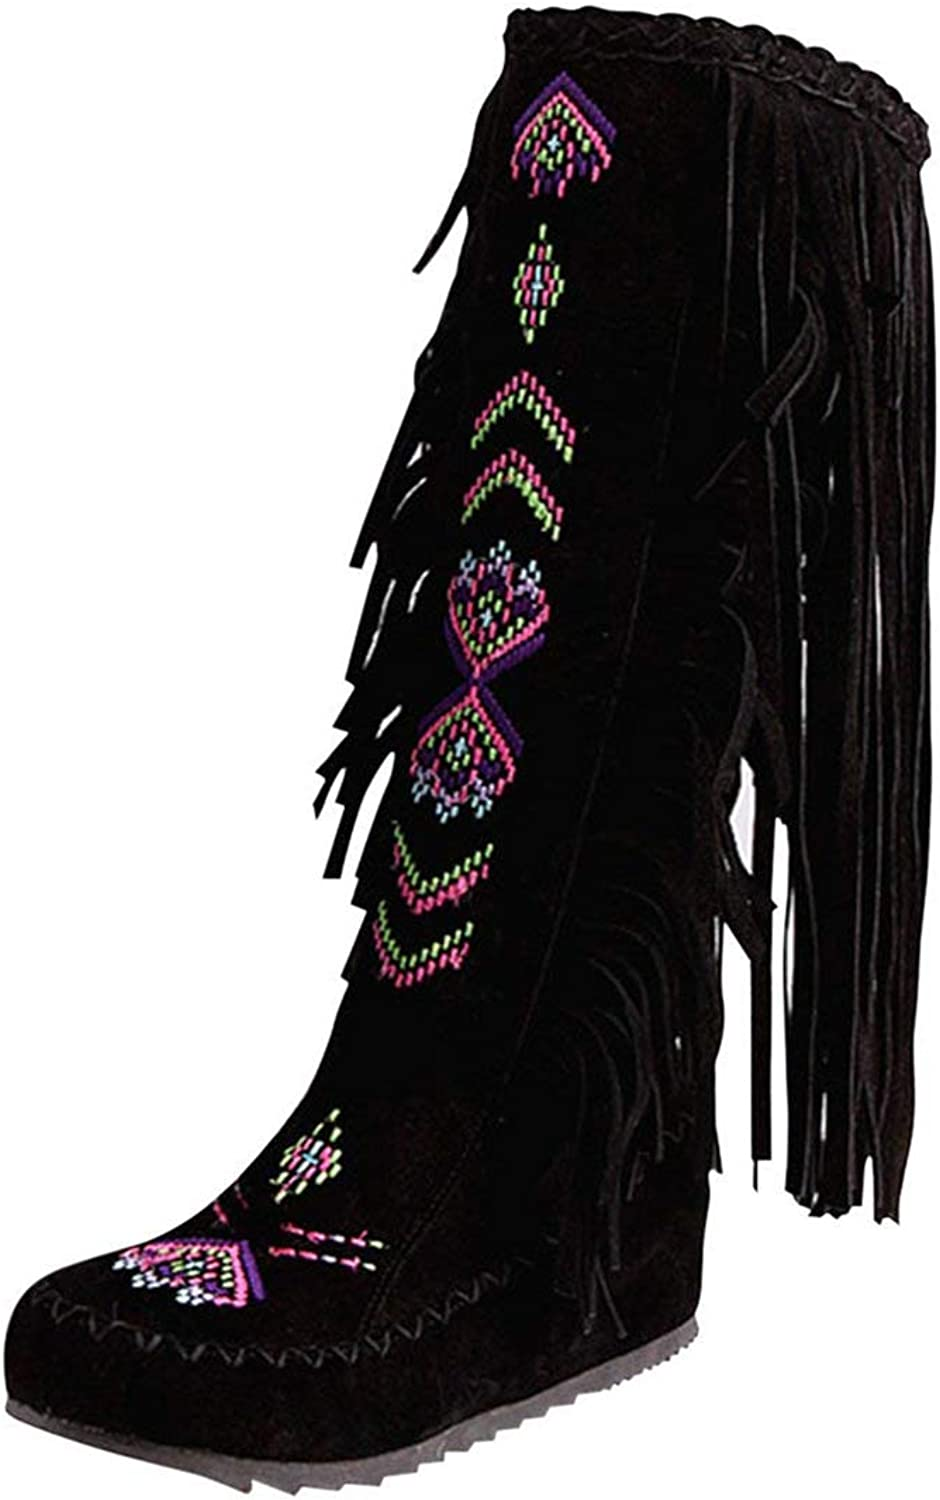 Artfaerie Women's Fringe Mid Calf Boots Hidden Heel Boots with Embroidery Warm Retro shoes